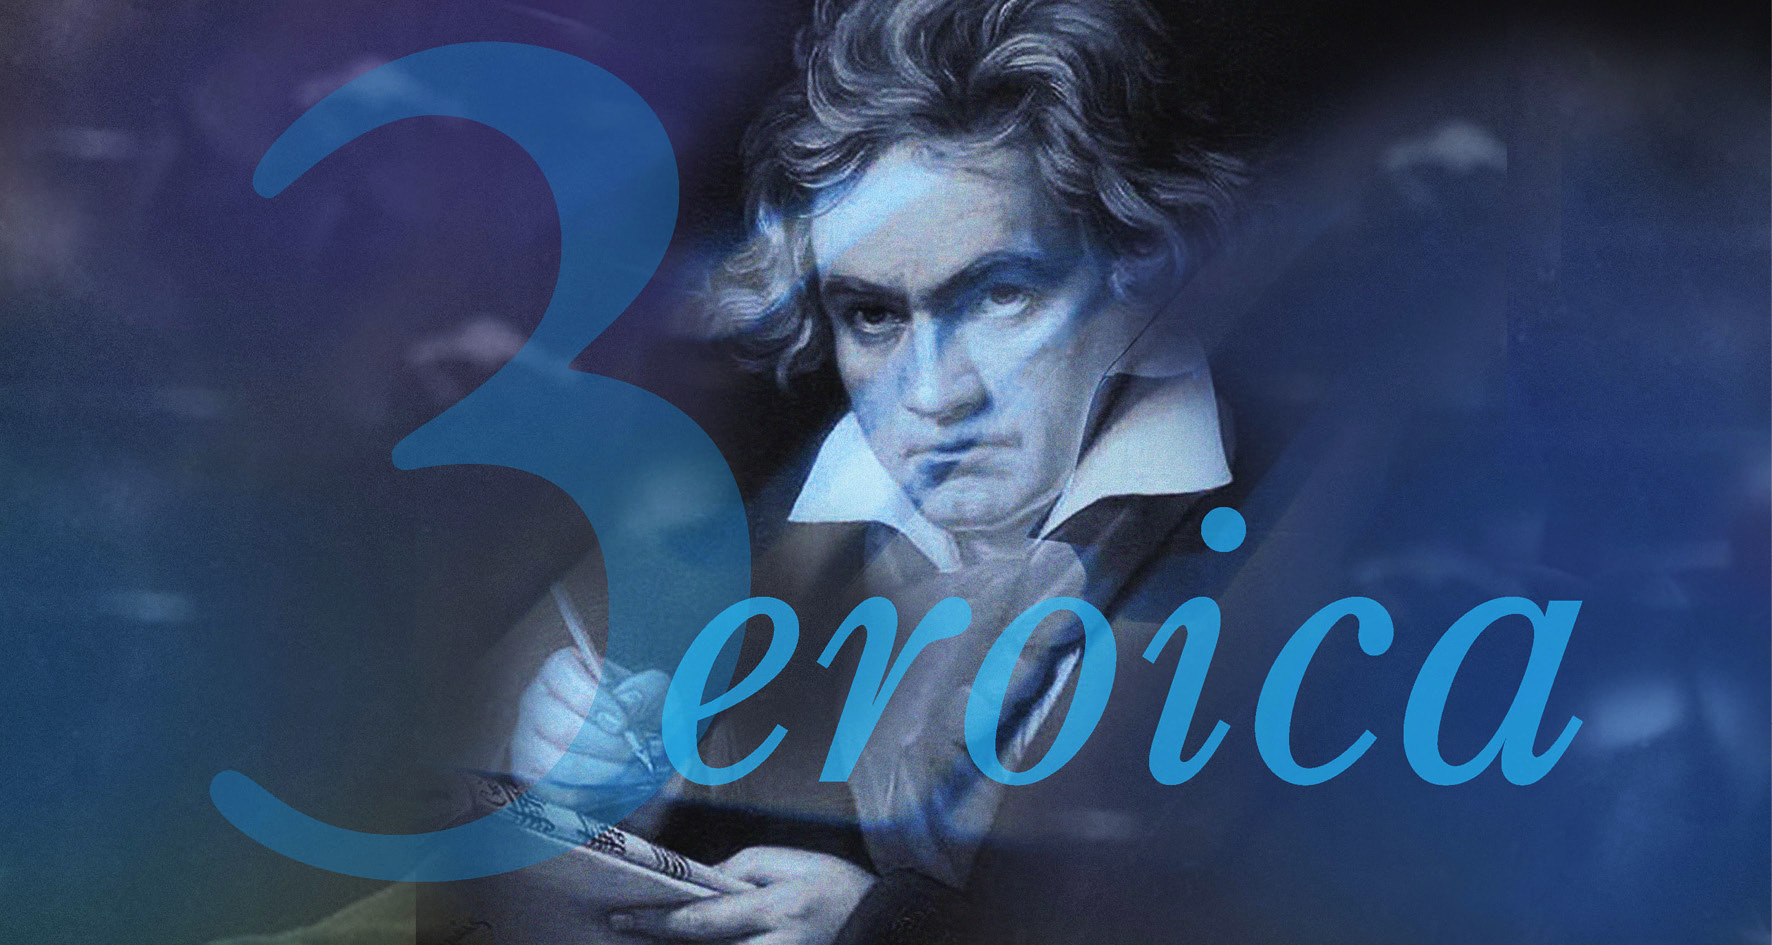 Eroica! Beethoven, Mozart and Sibelius get the Bardi underway in 2018